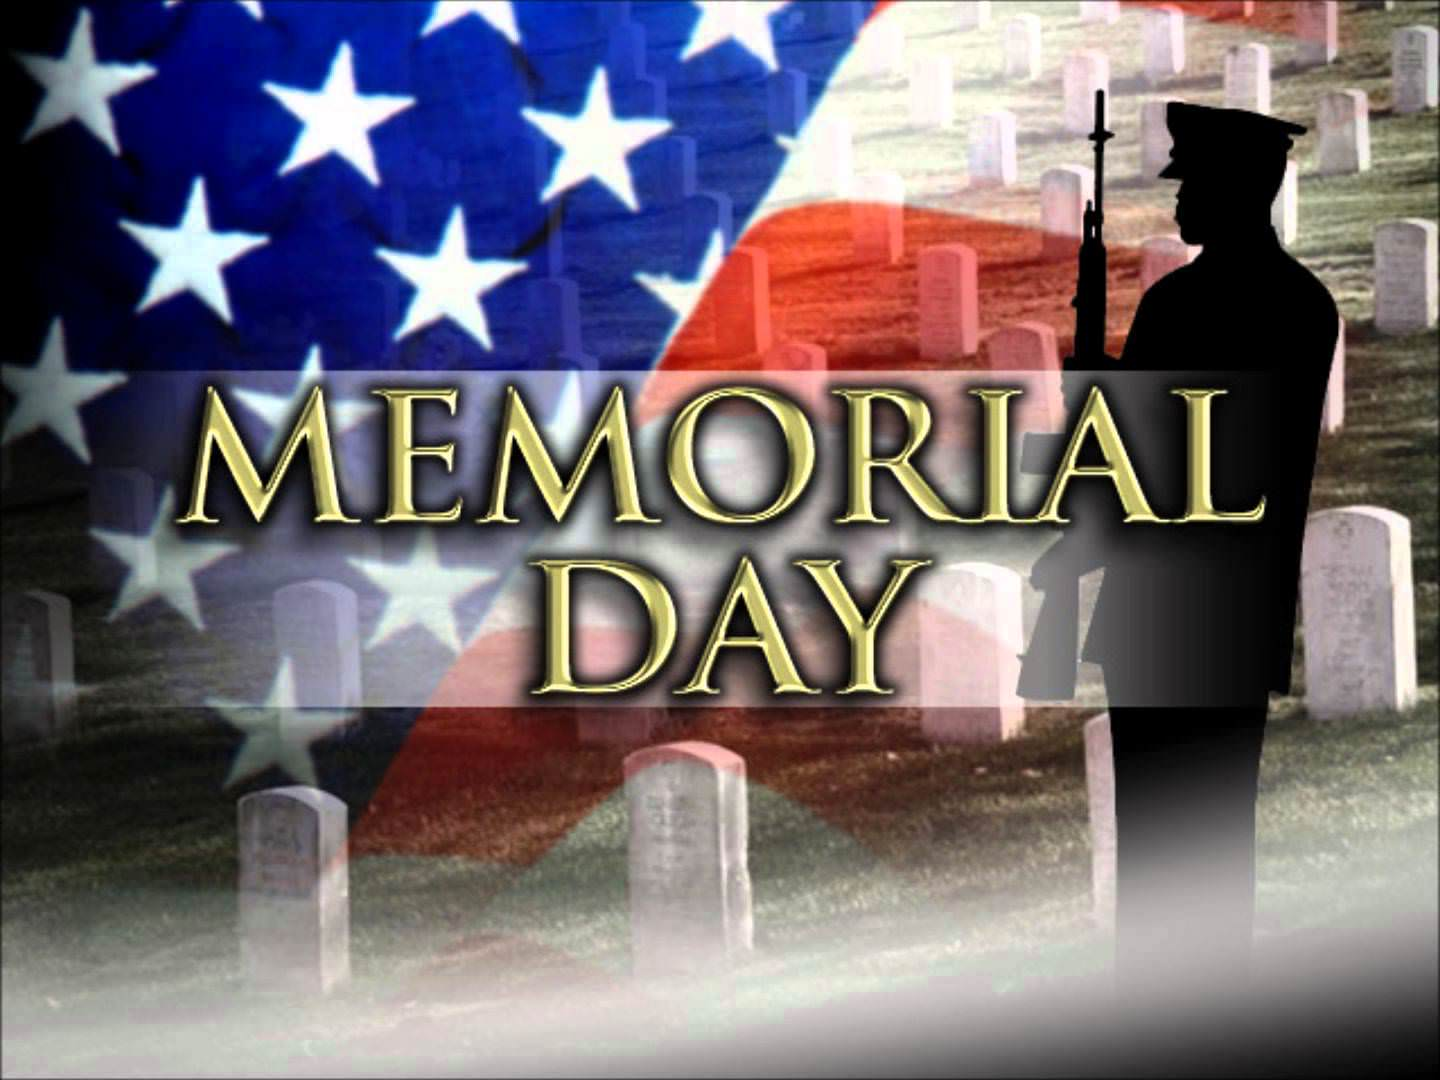 Memorial Day Wallpaper Decoration – Choose Best Images to Paint